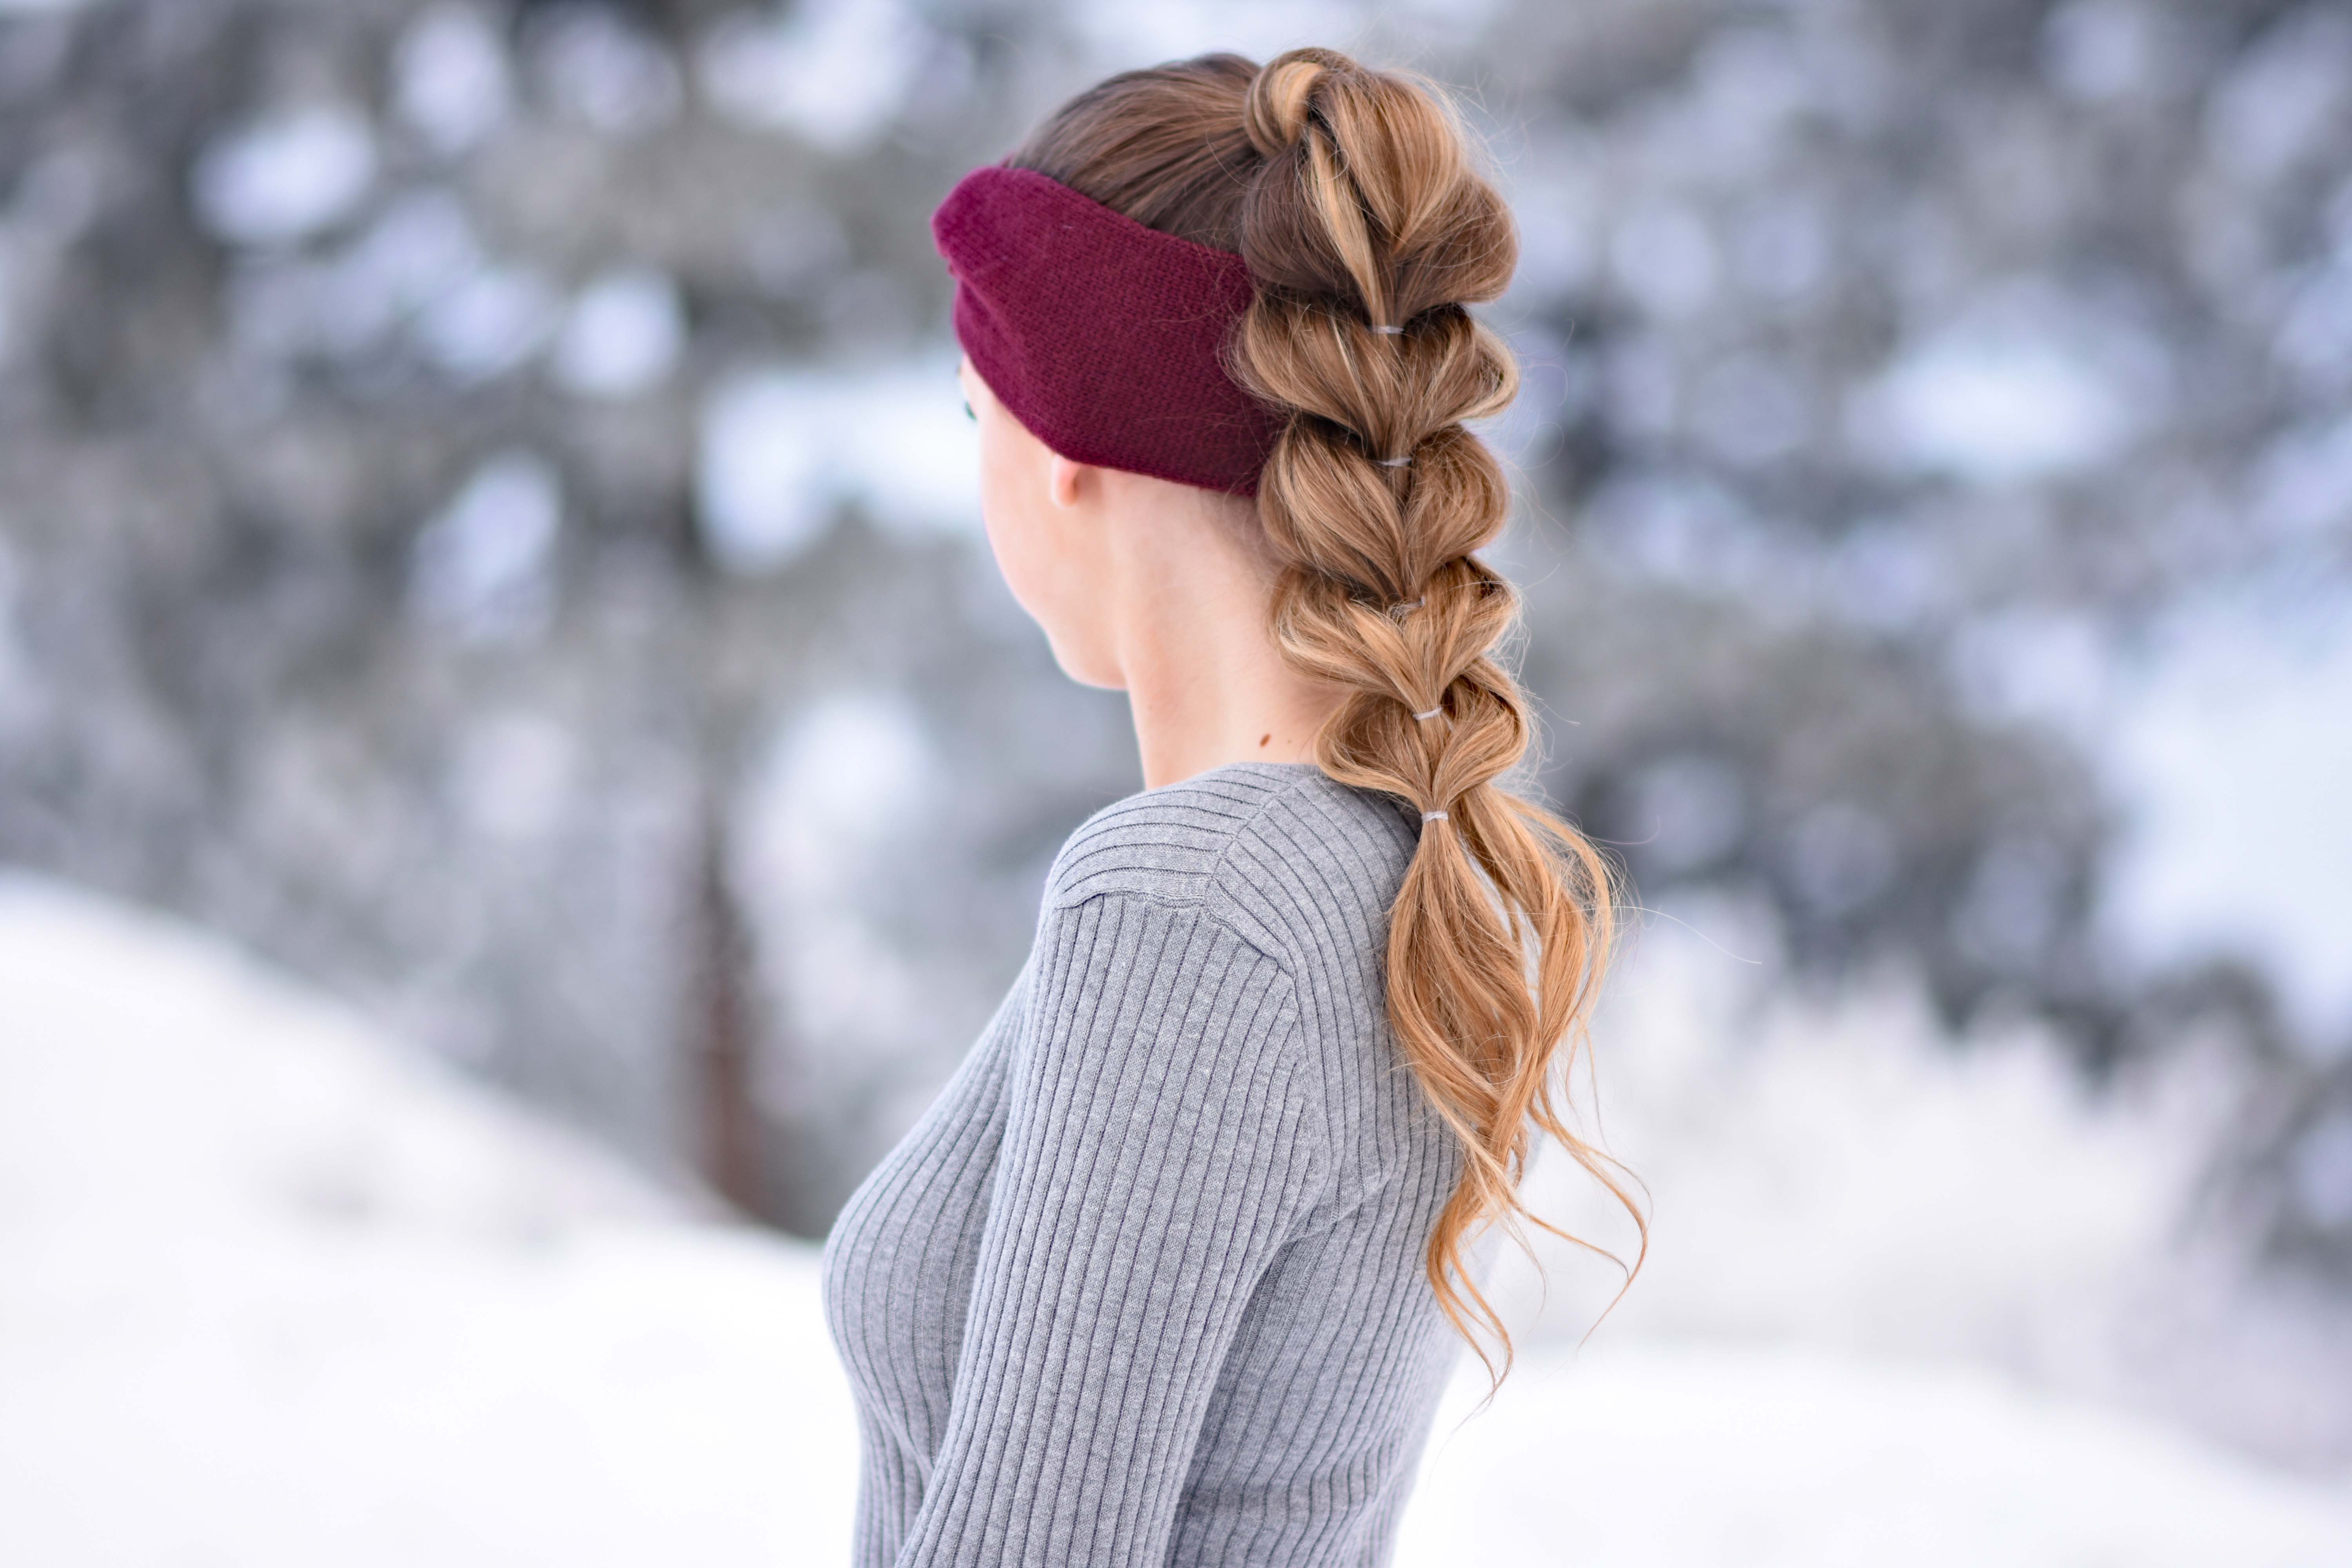 3 Easy Headband Hairstyles